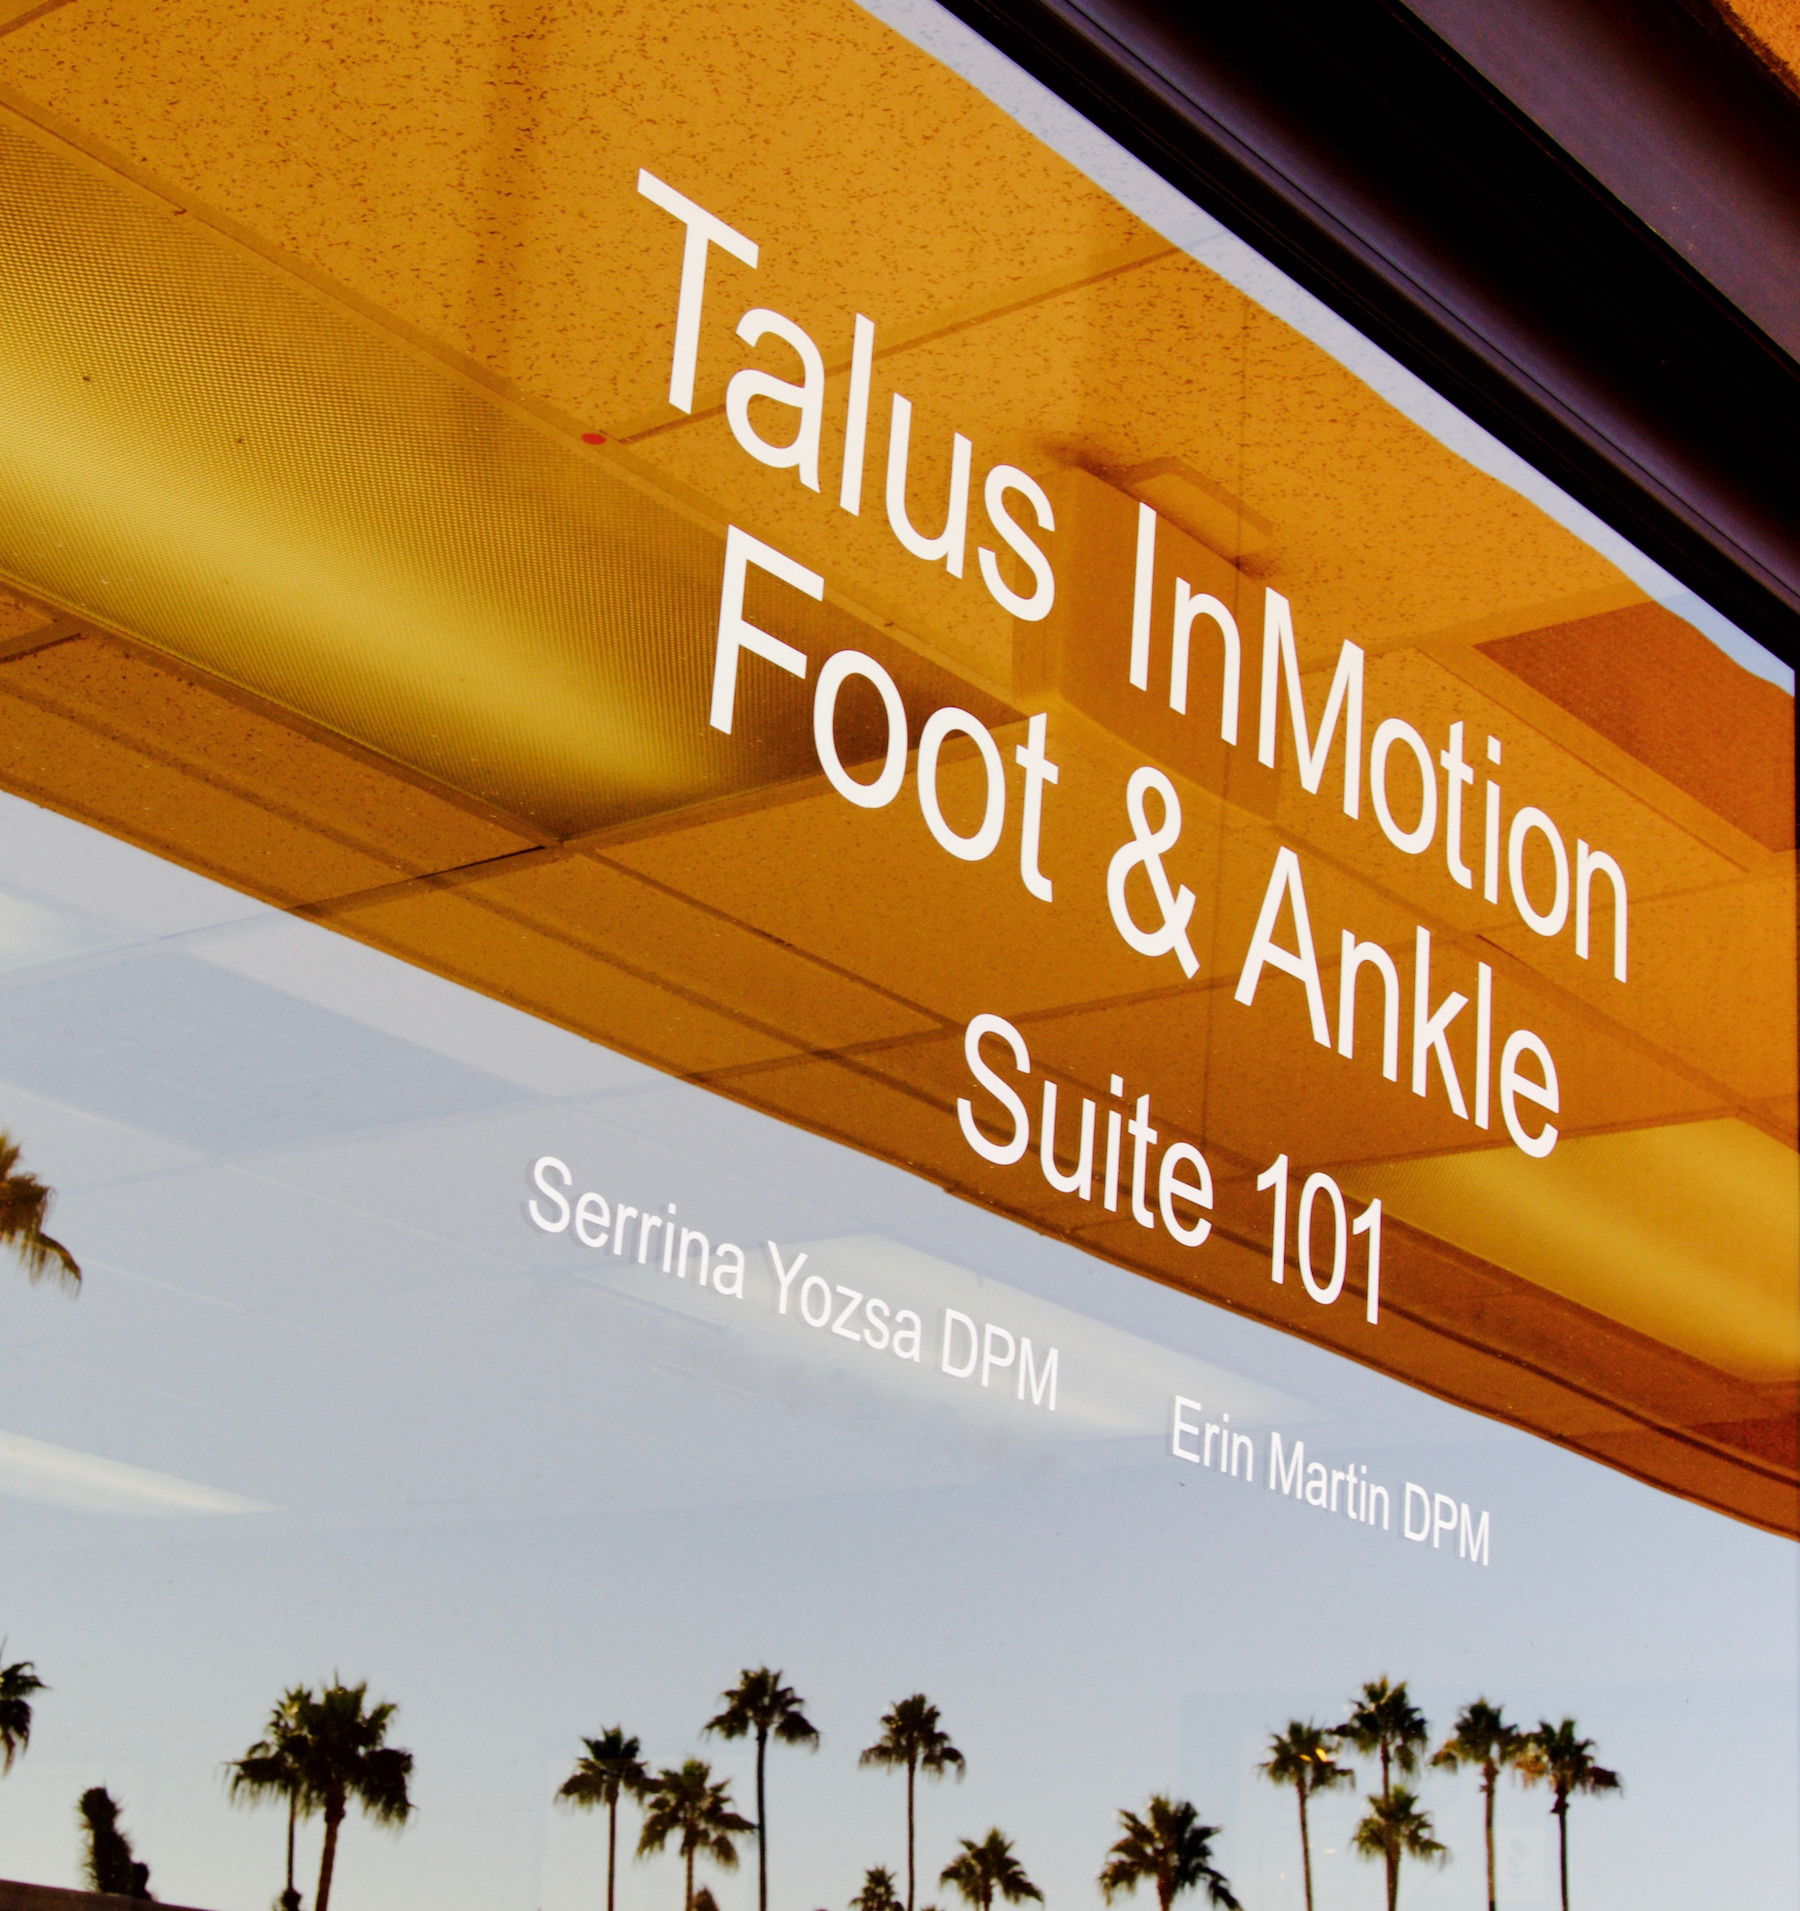 Talus inMotion Foot and Ankle | Podiatrists | Scottsdale | Phoenix | Arizona | Exterior | Exterior Door Signage.jpg